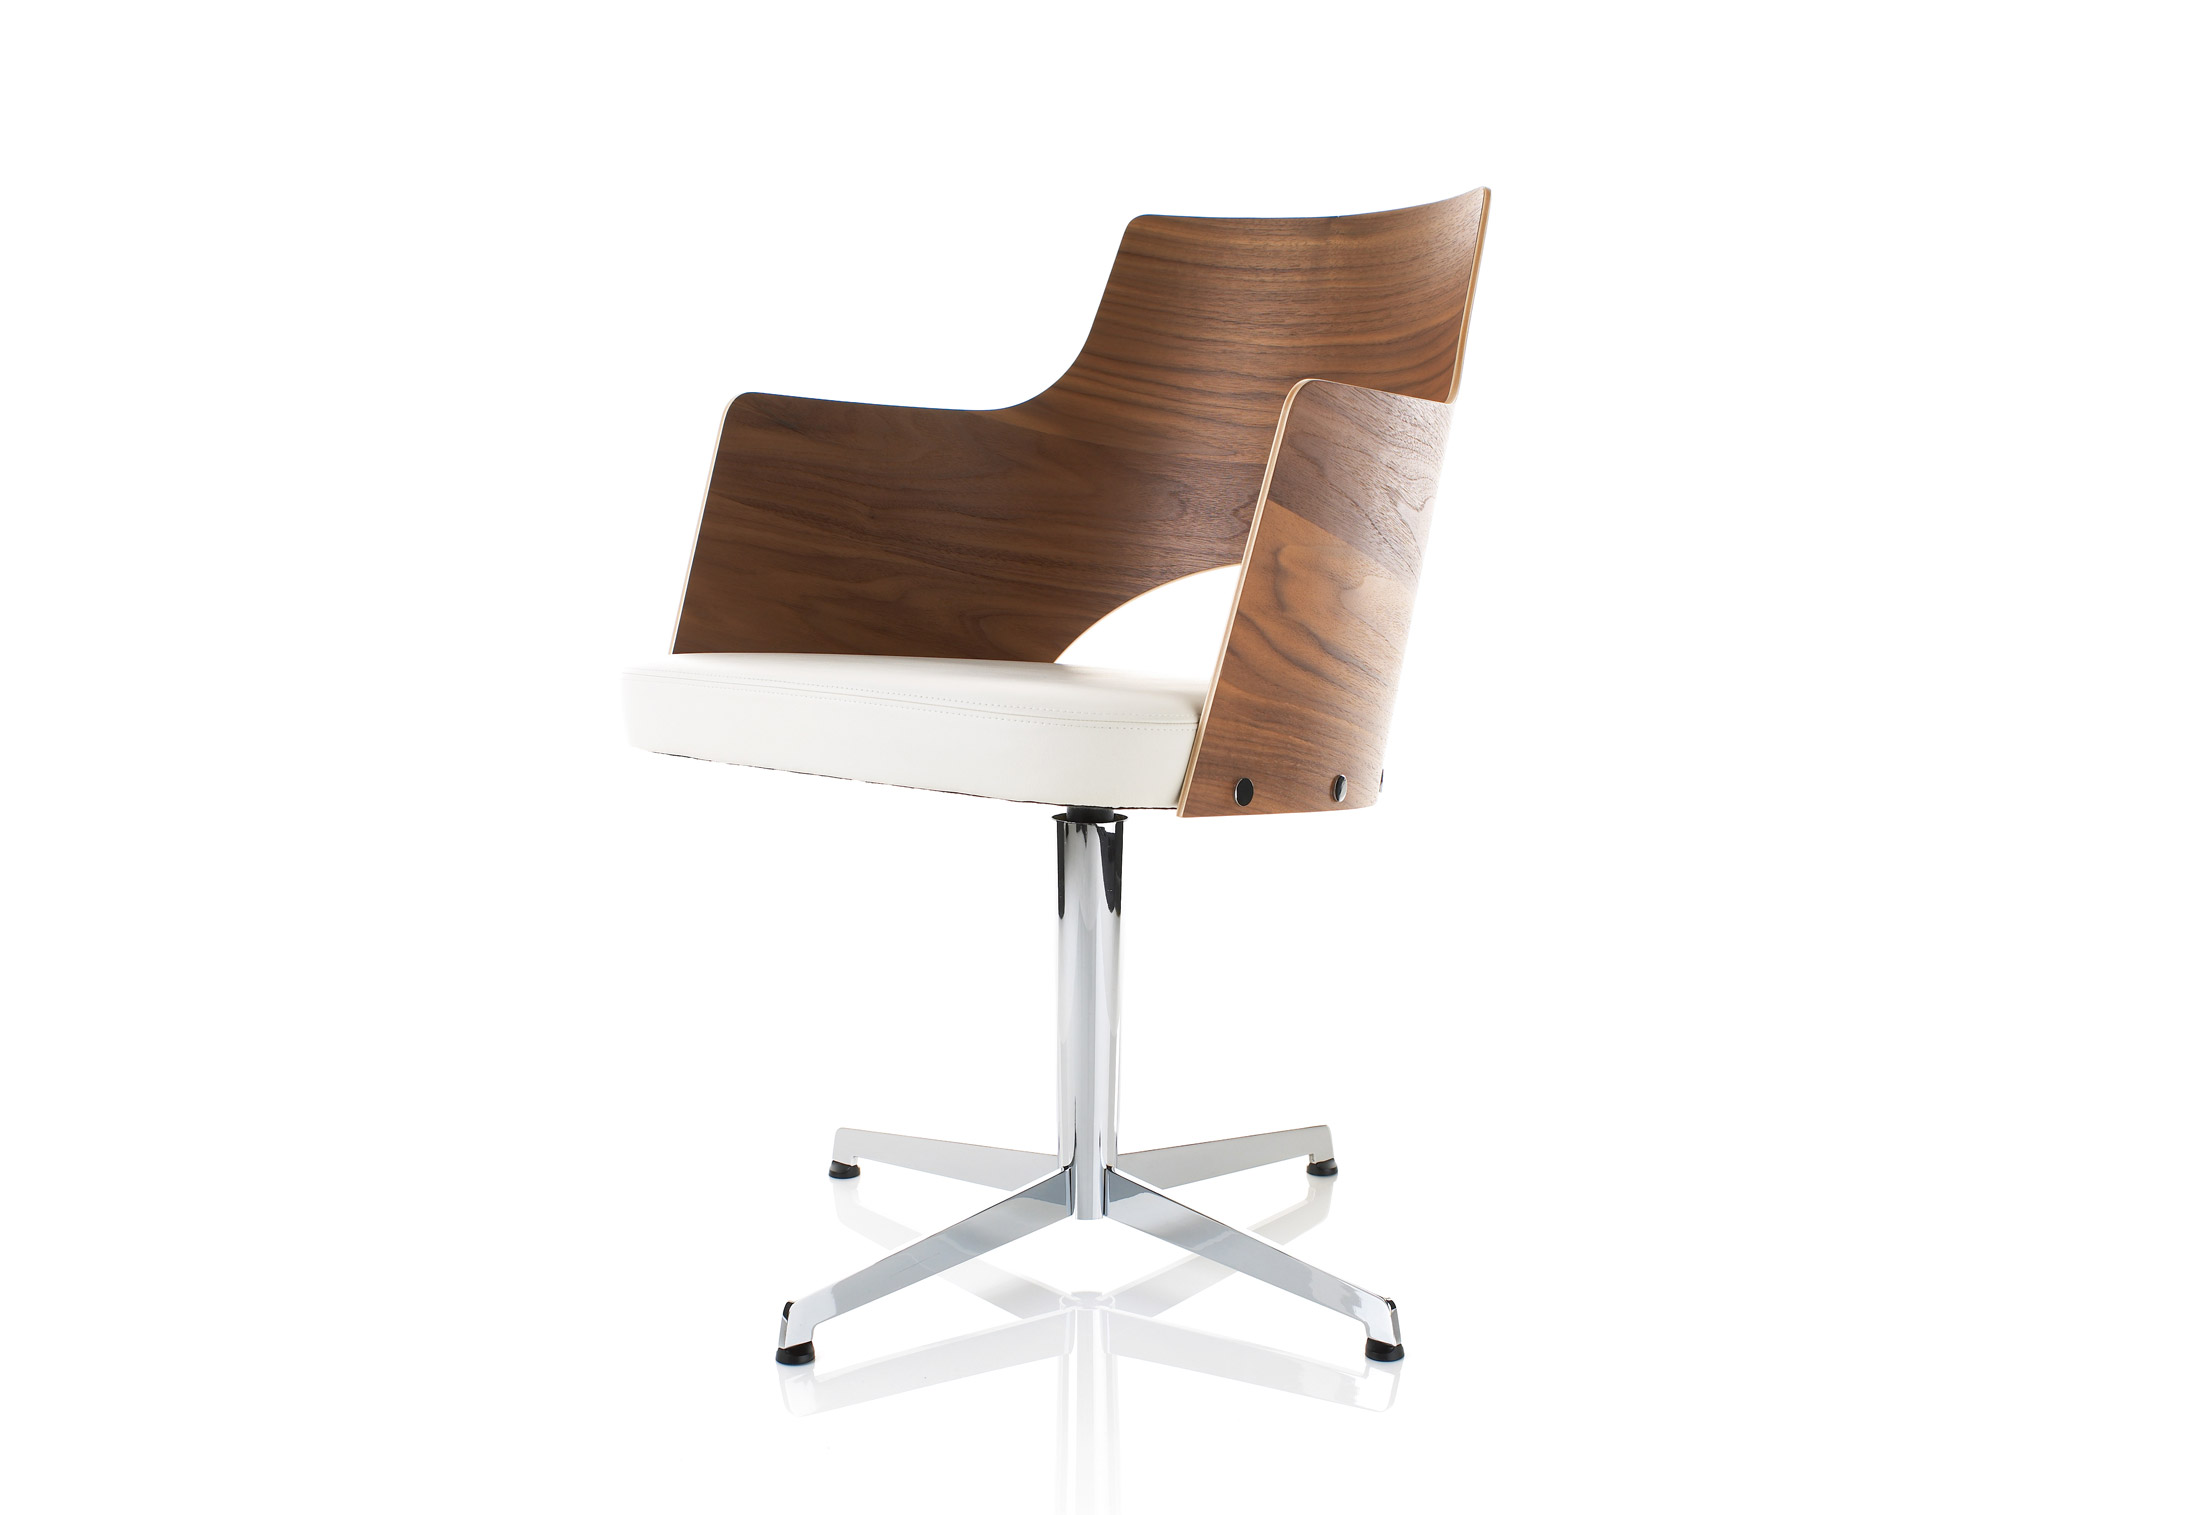 Cortina easychair by Lammhults STYLEPARK